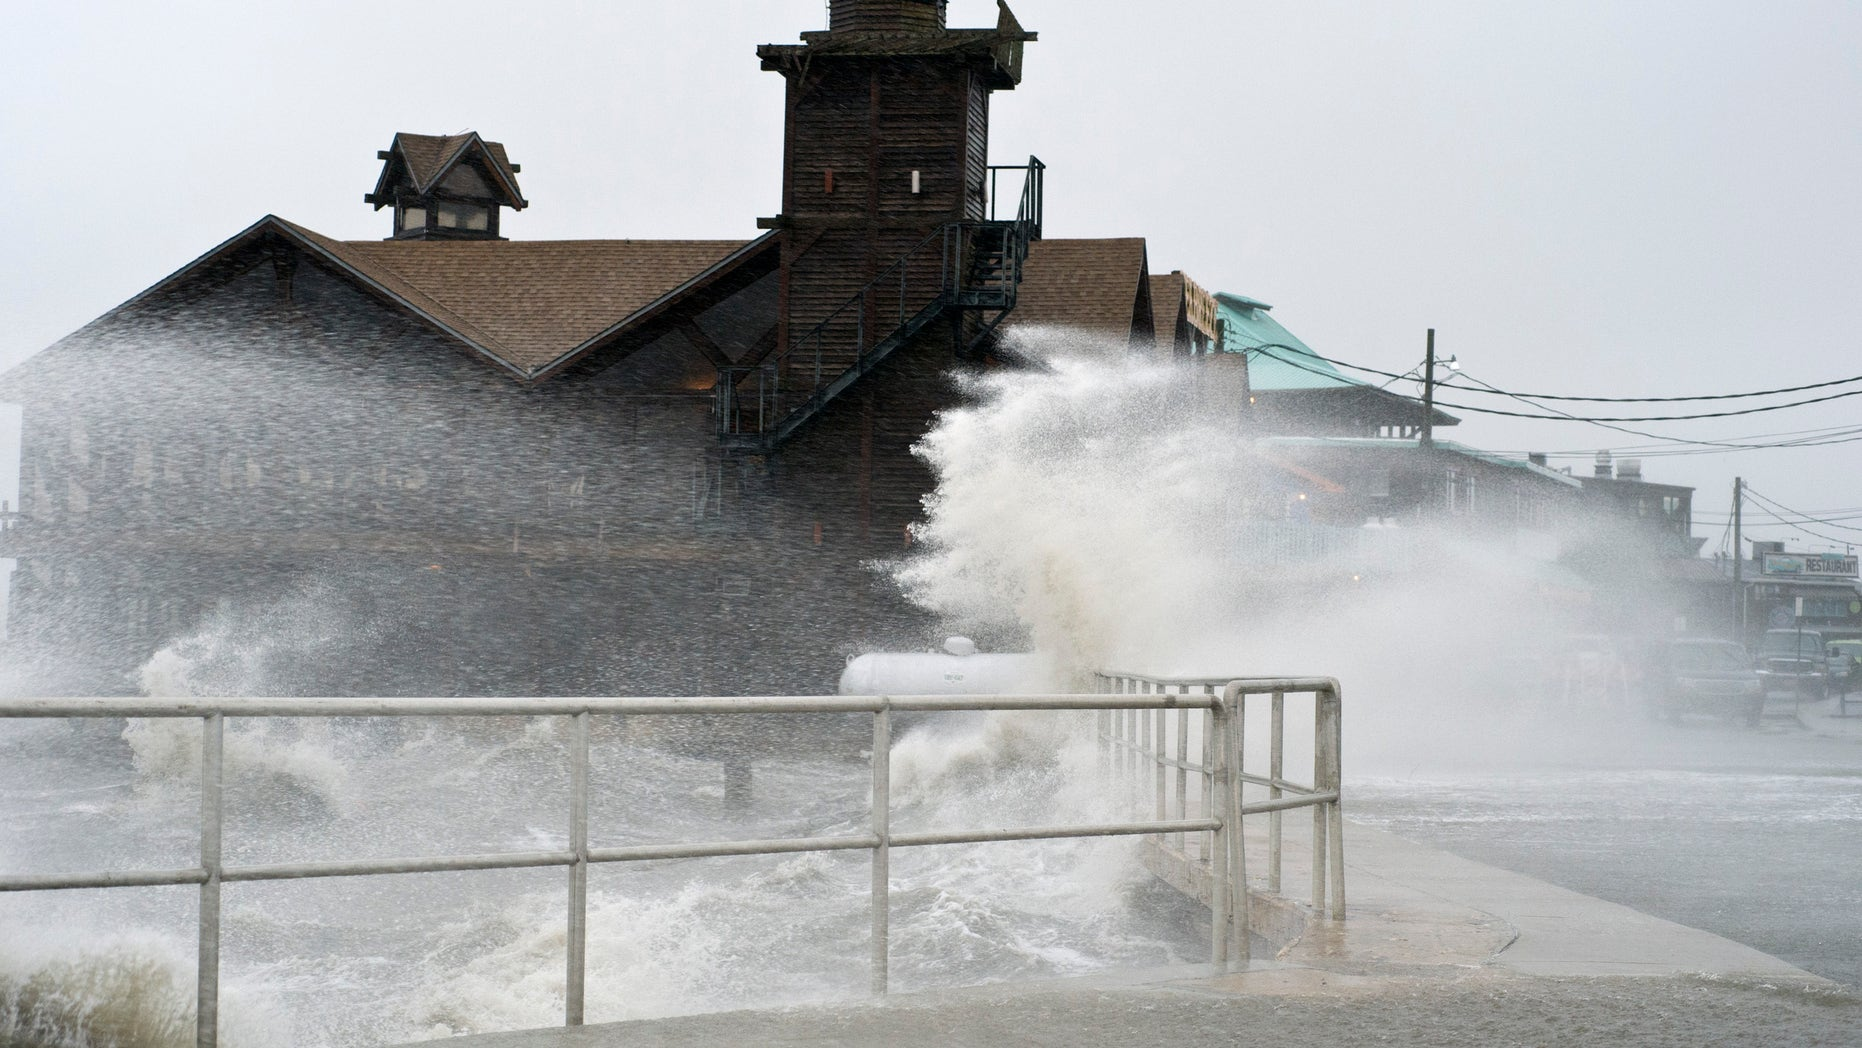 High winds, high tide strike at the main street of Cedar Key, Fla., as Tropical Storm Debby makes it's way across the Gulf of Mexico